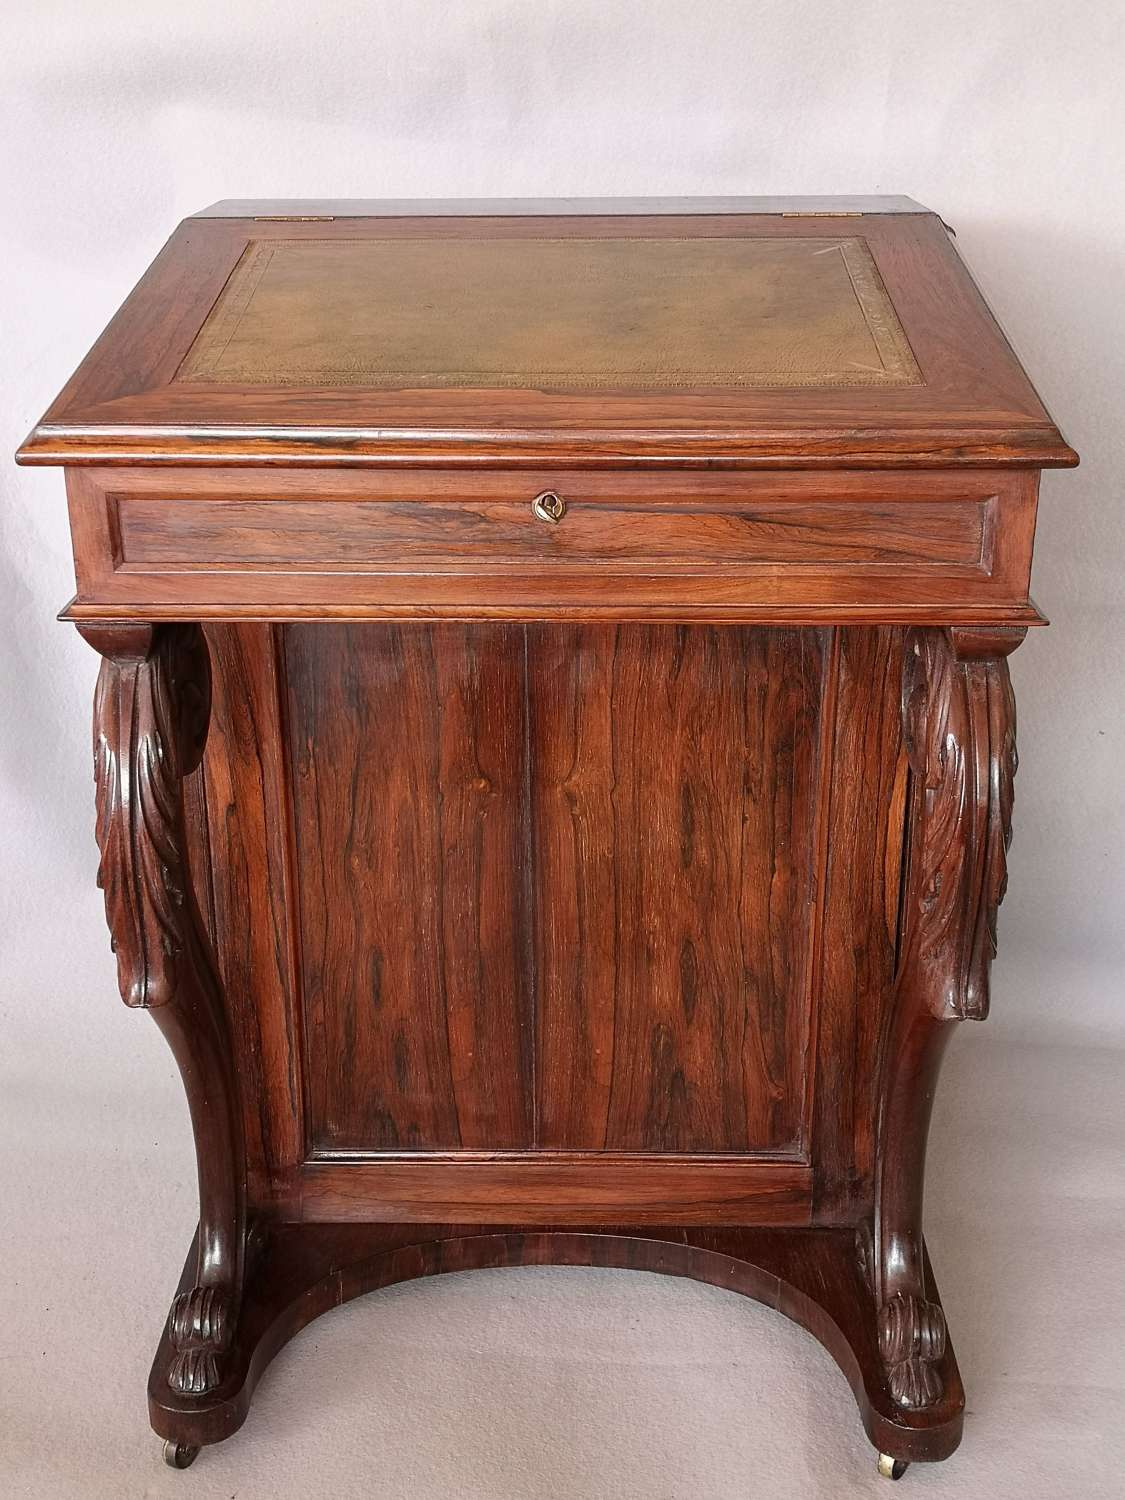 Regency rosewood Davenport writing desk